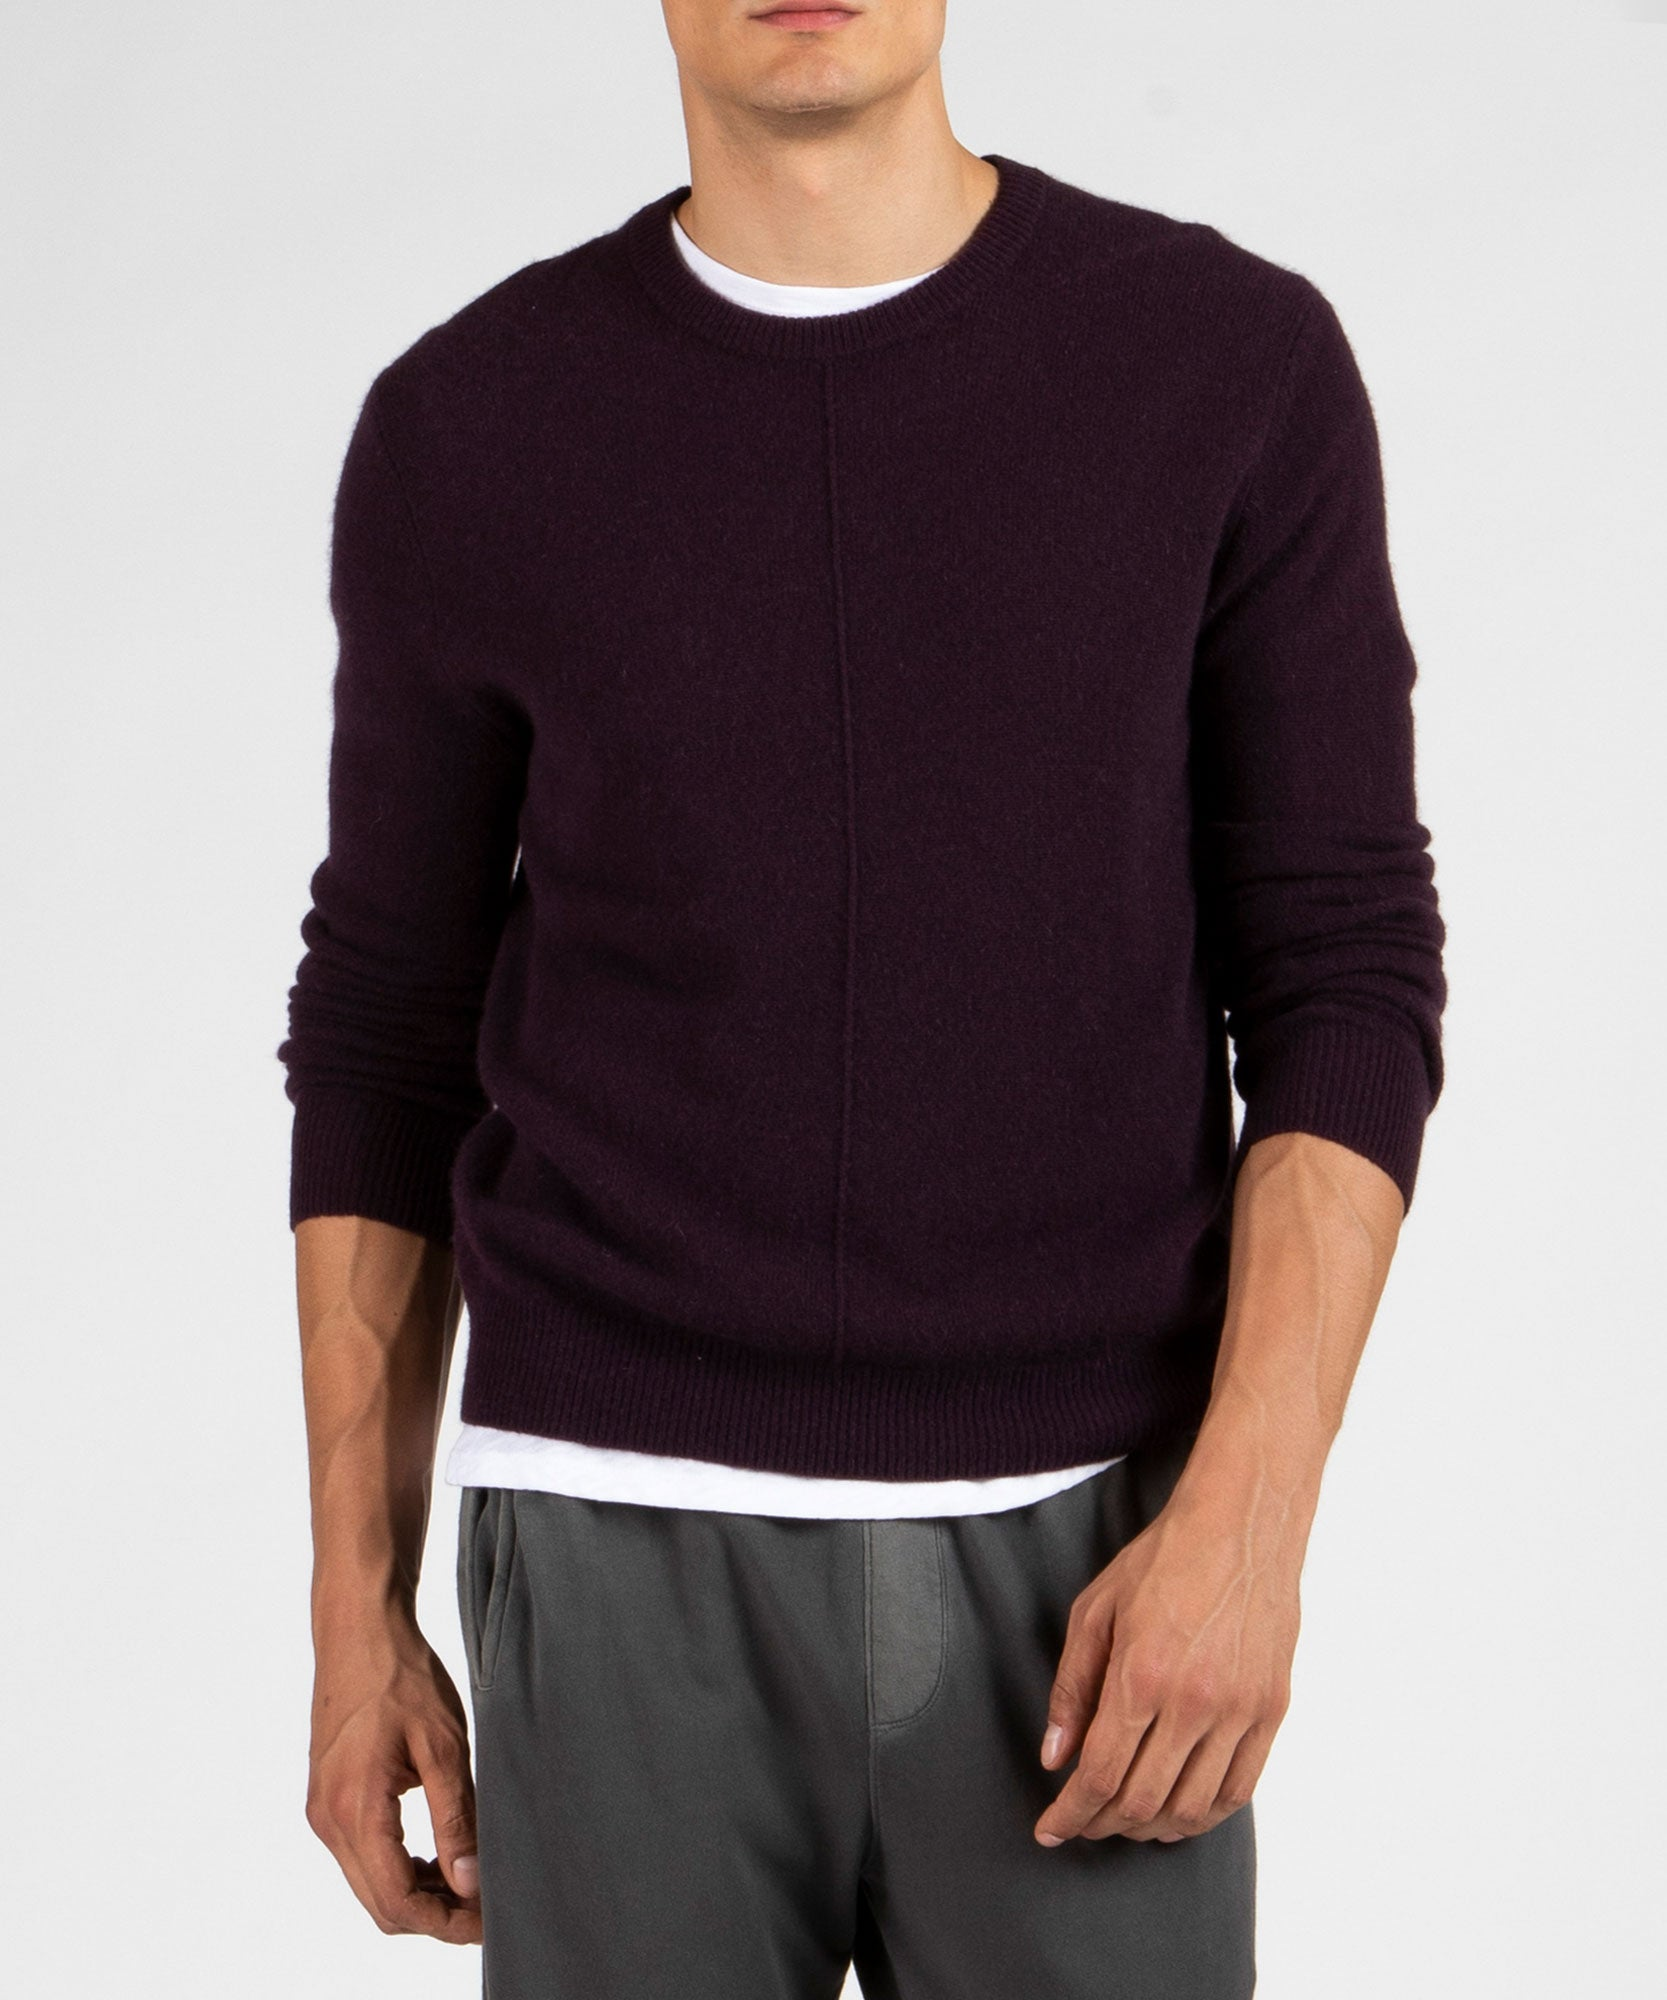 Dark Maroon Cashmere Exposed Seam Crew Neck Sweater - Men's Cashmere Sweater by ATM Anthony Thomas Melillo